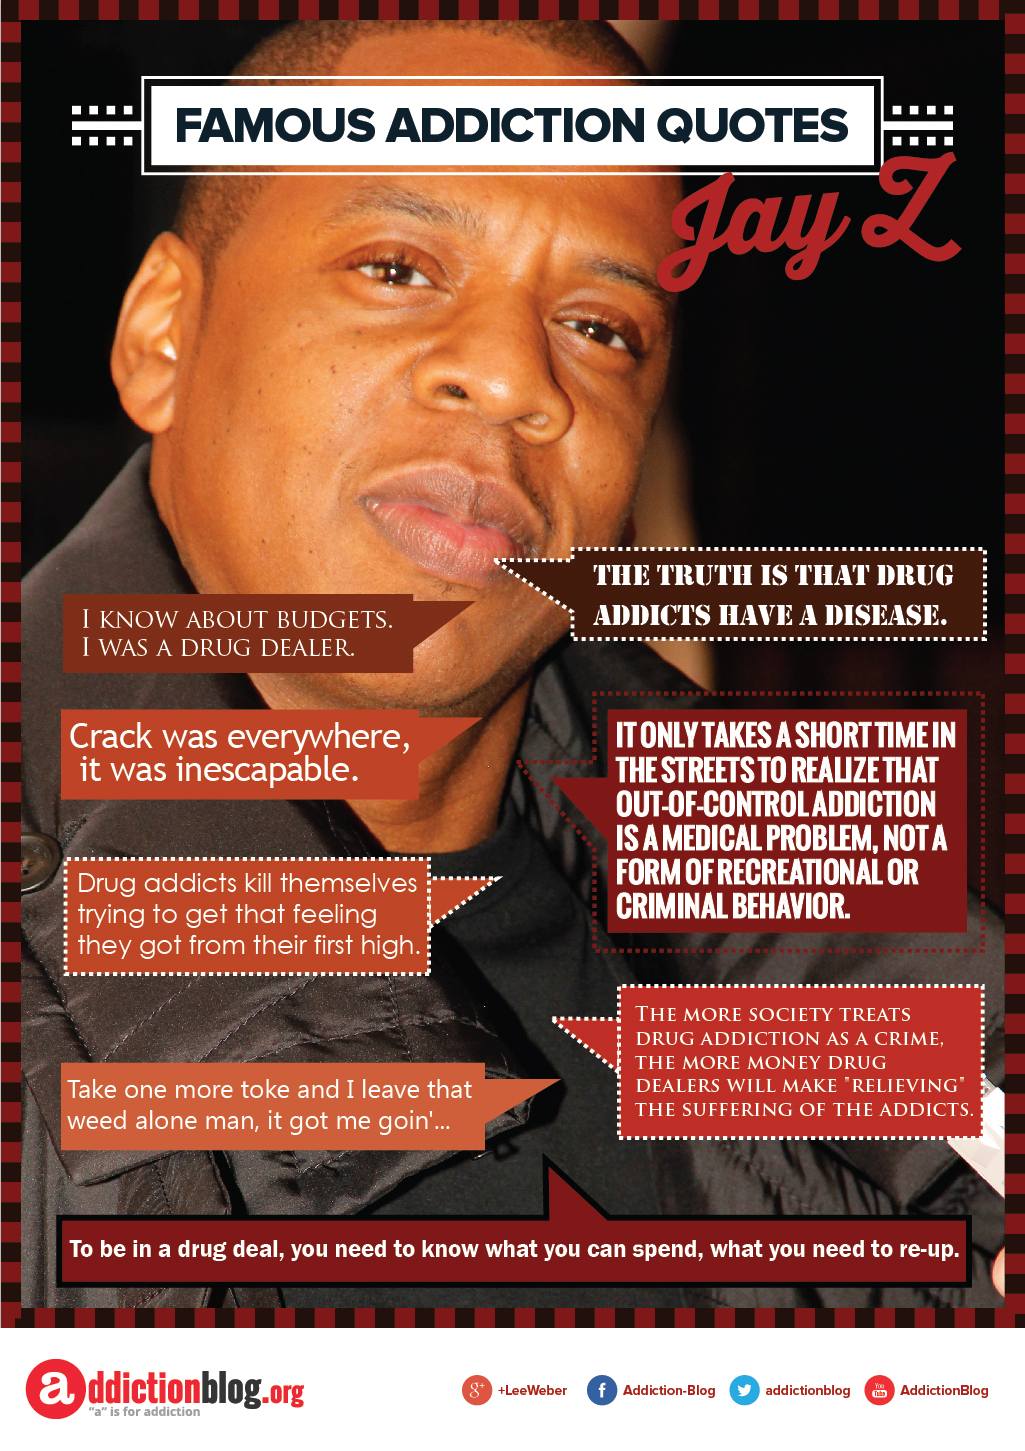 Jay Z quotes on drugs and addiction (INFOGRAPHIC)